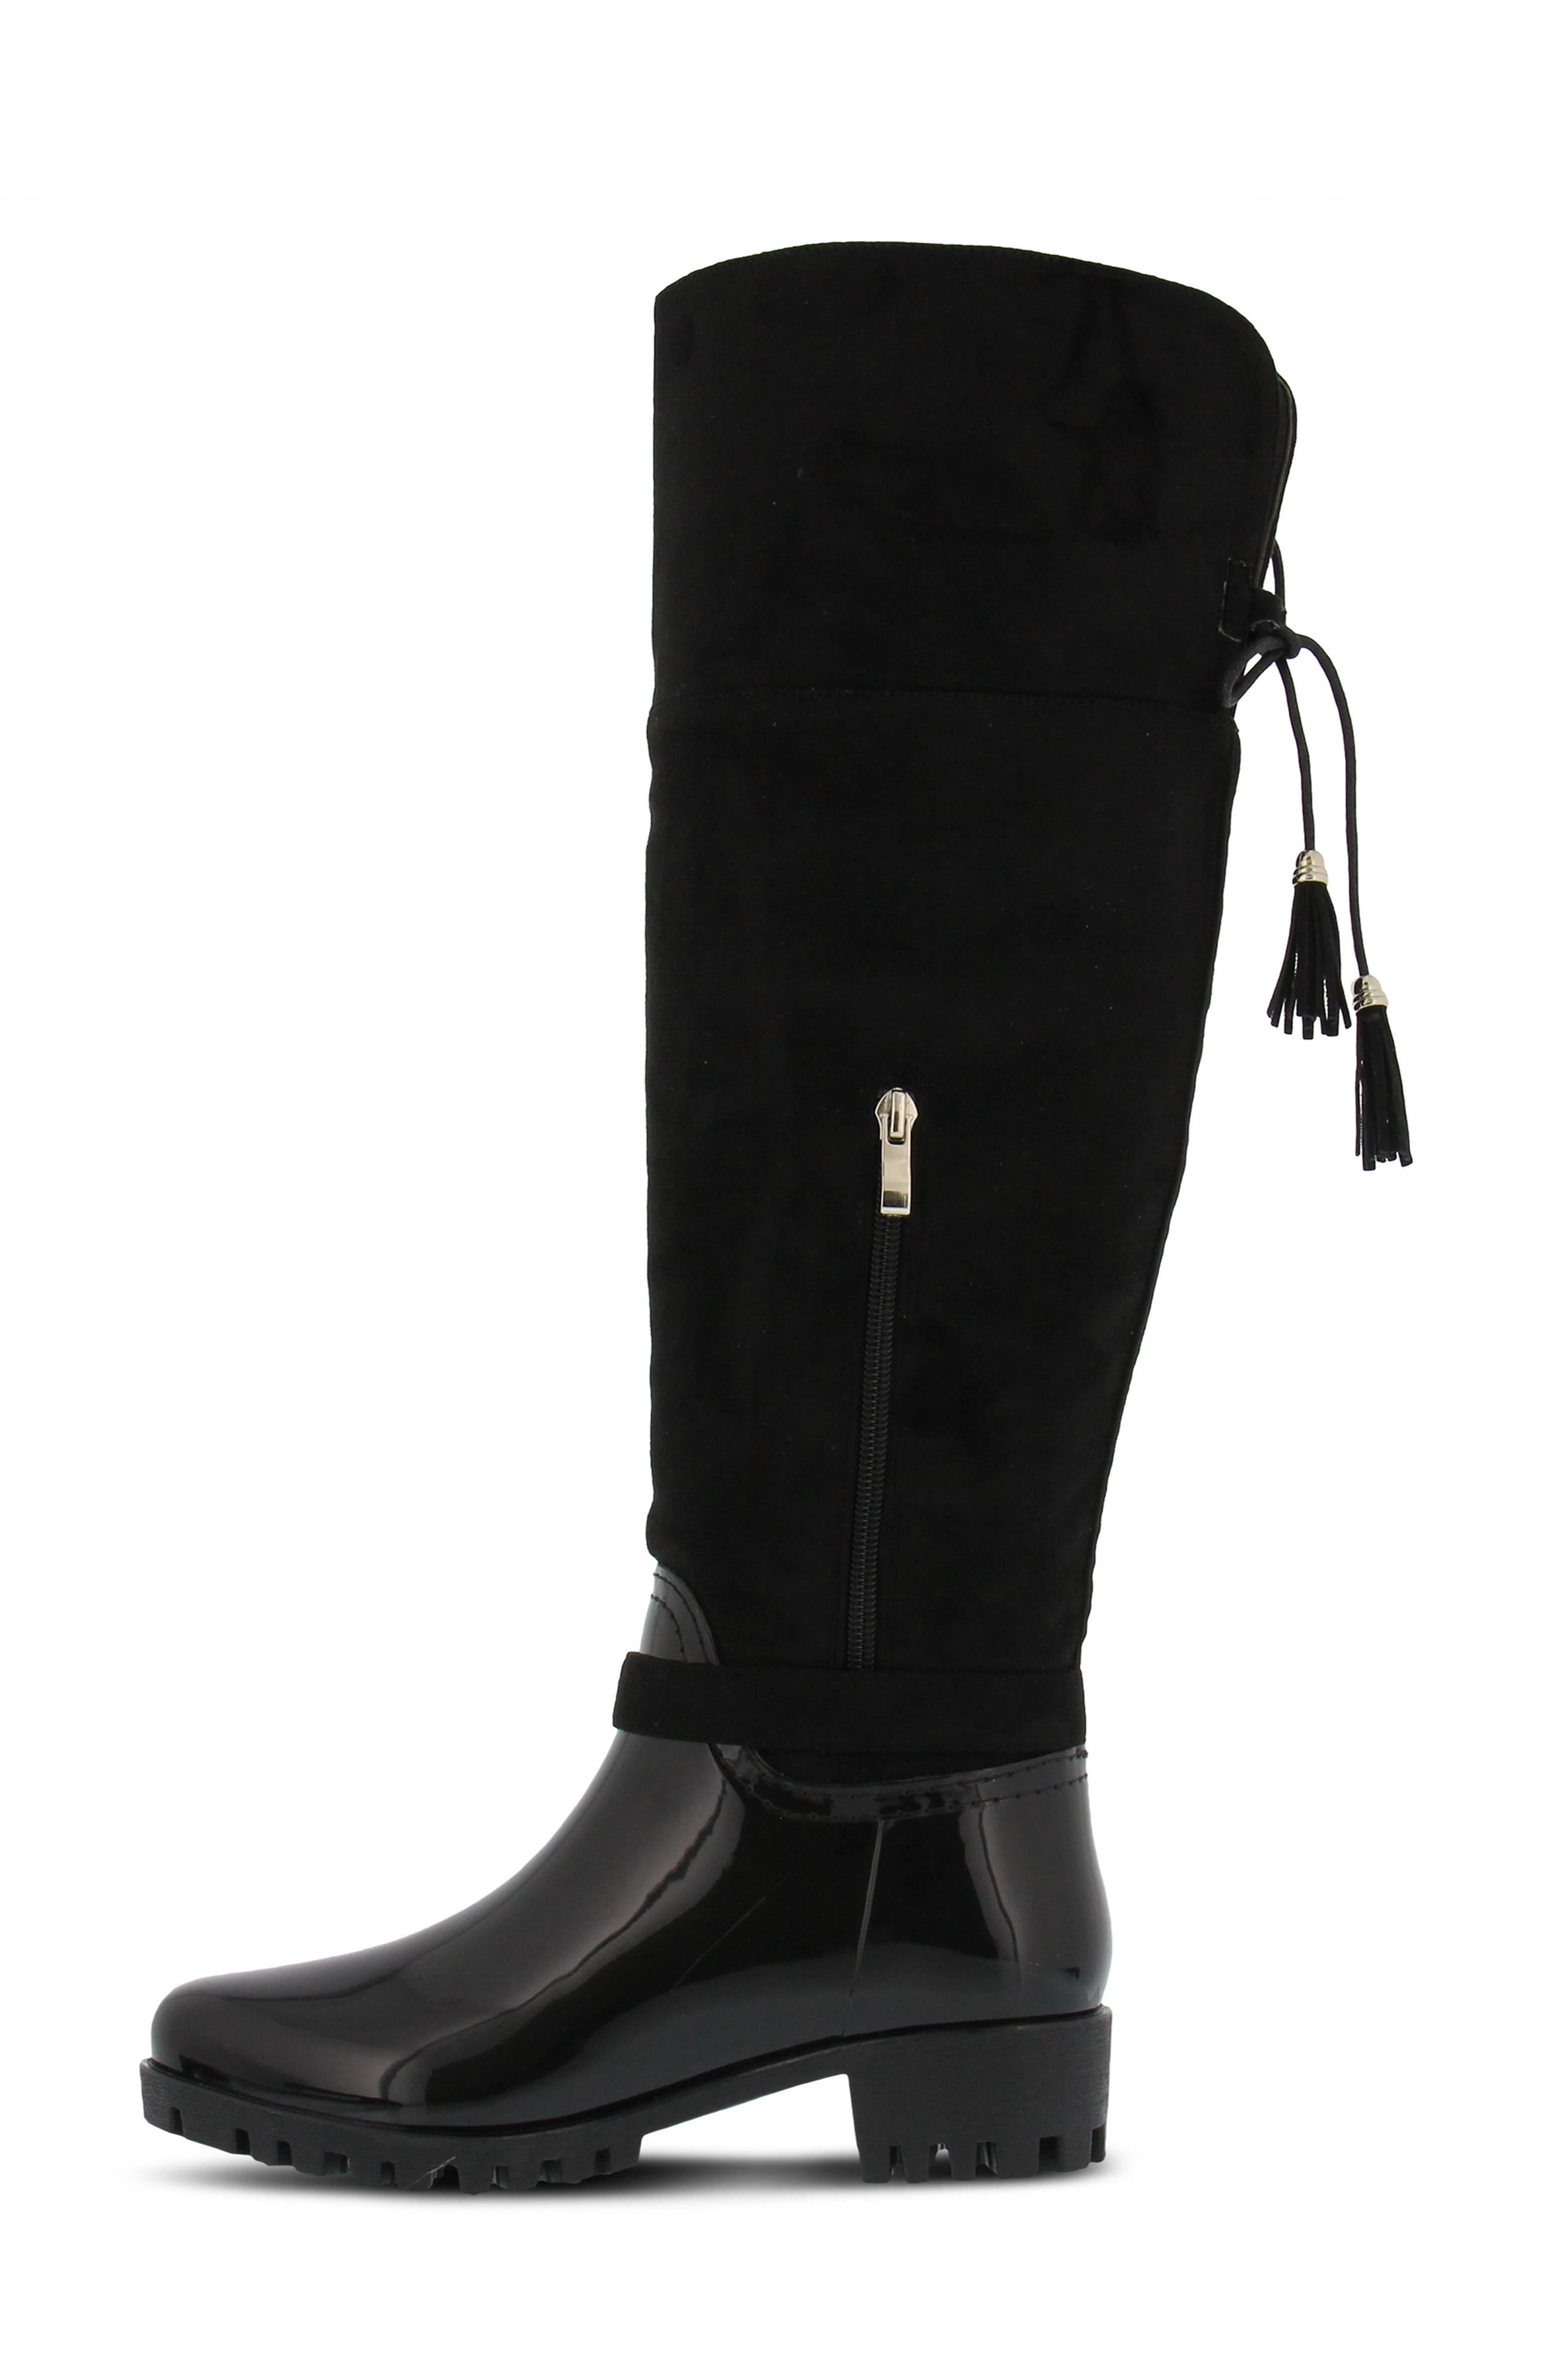 Mattie Over the Knee Waterproof Boot,                             Alternate thumbnail 8, color,                             BLACK